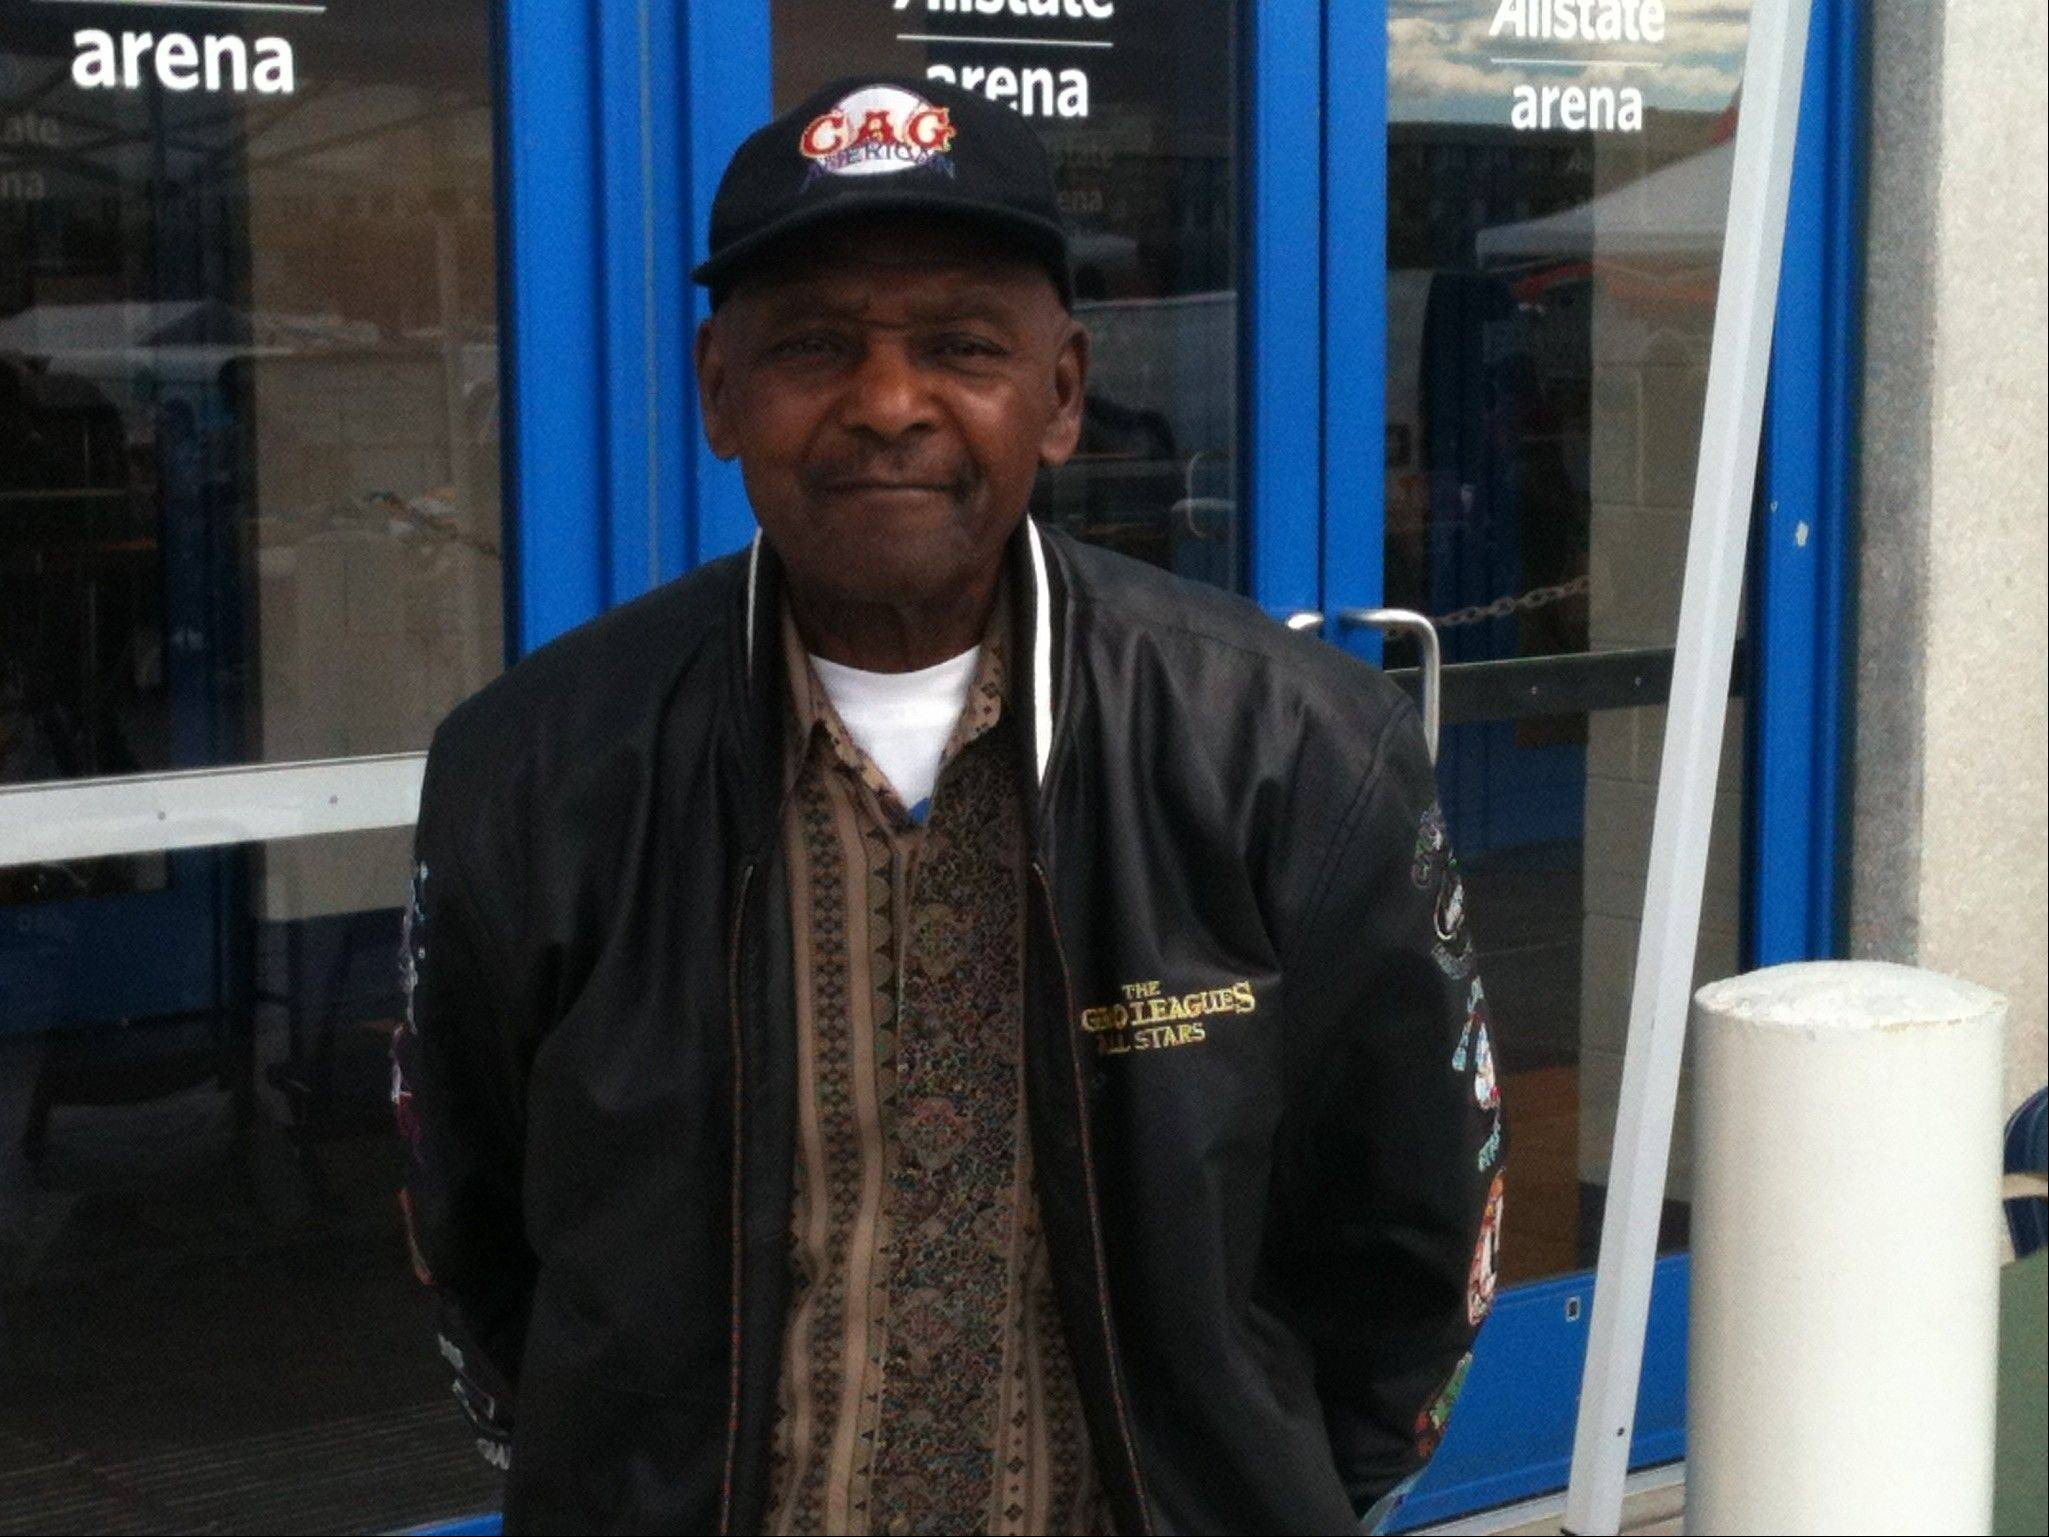 Nathan �Sonny� Weston, a former Negro League baseball player, was one of several players who appeared at Wolff�s Flea Market in Rosemont Sunday.